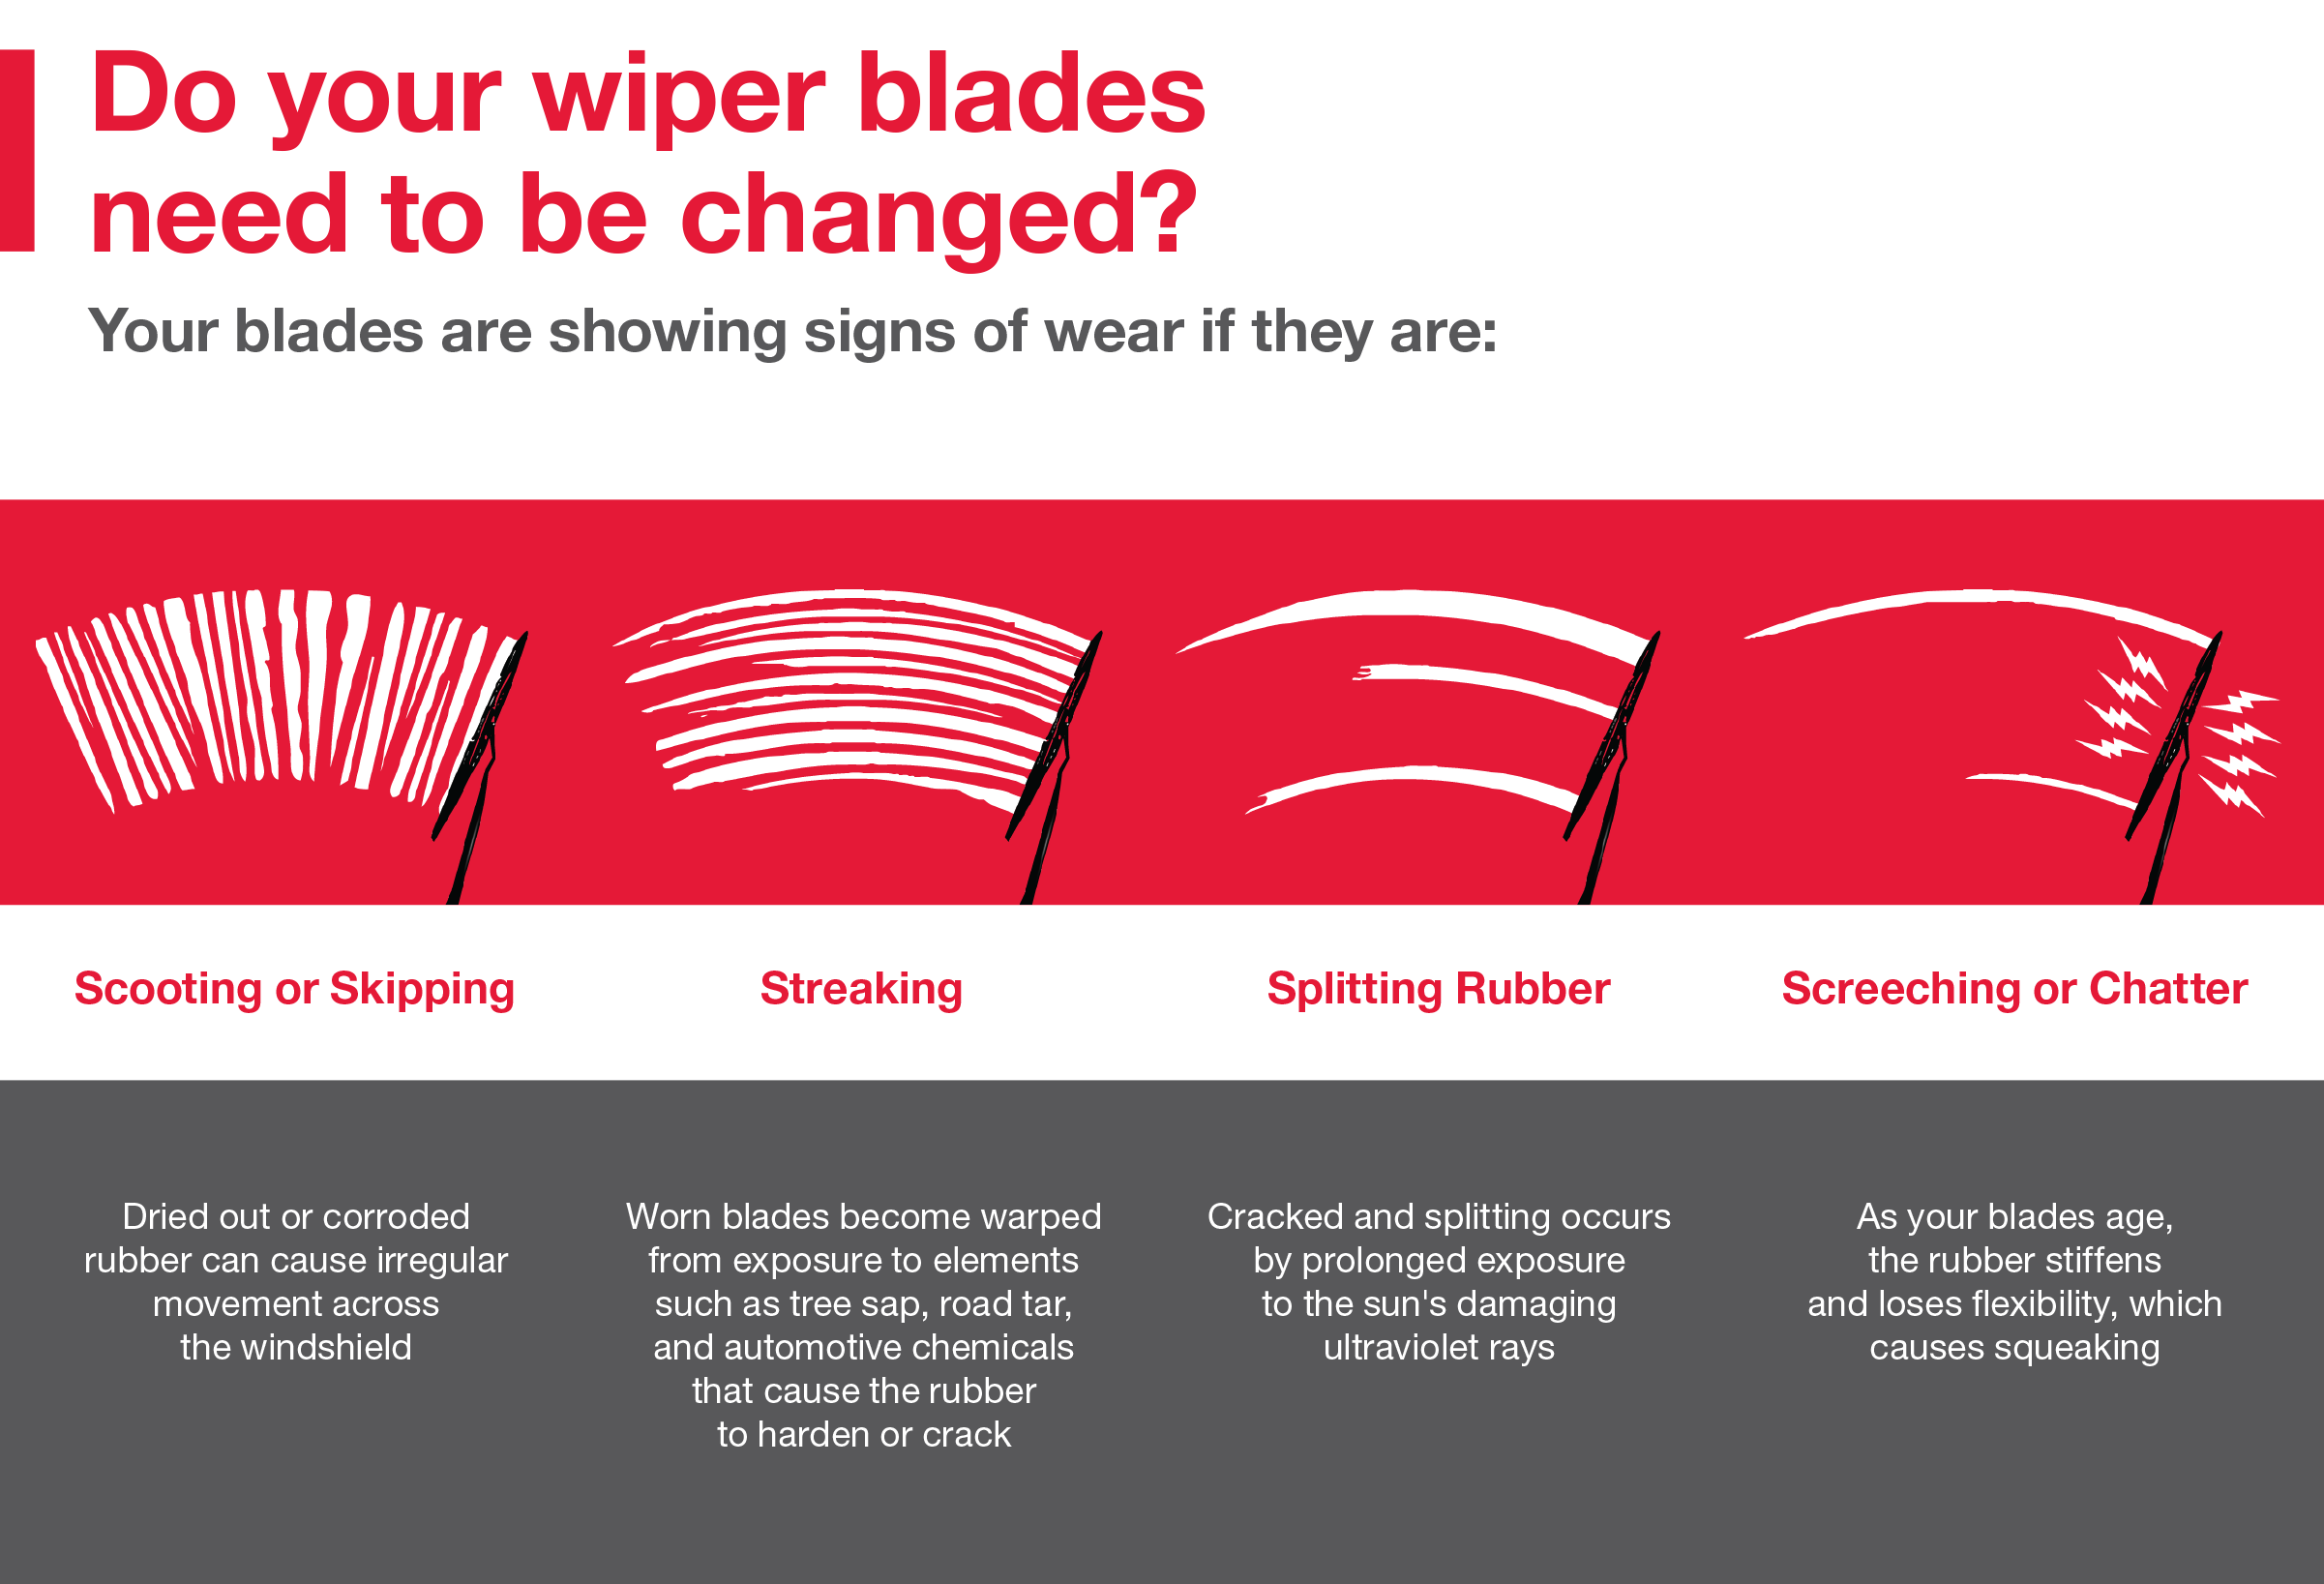 Do your wiper blades need to be changed? Call your local dealer for more info: 203-349-8859